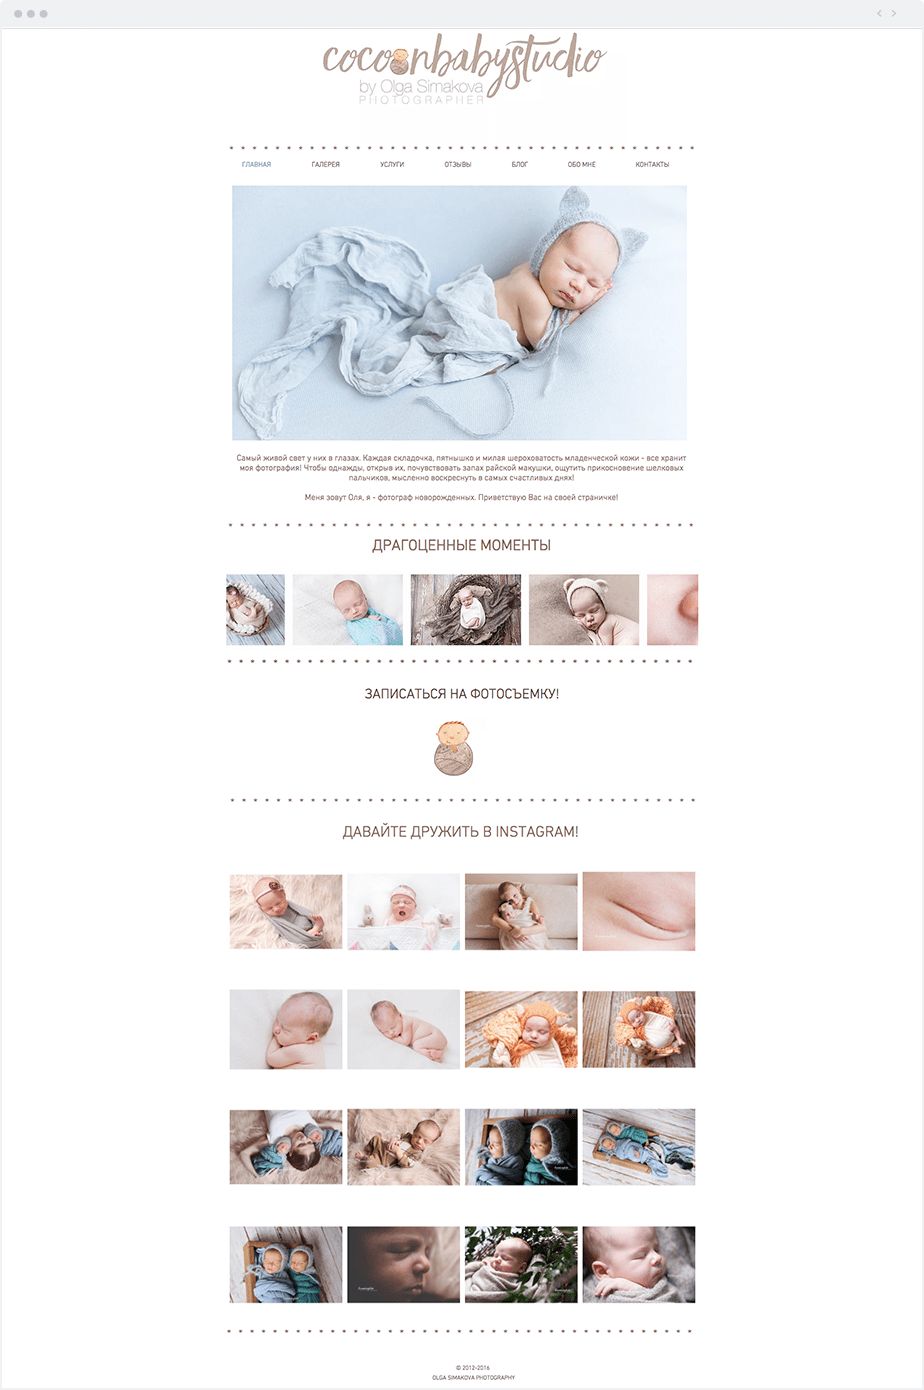 Stunning Wix online portfolio by newborn, baby and children photographer Cocoon Baby Studio